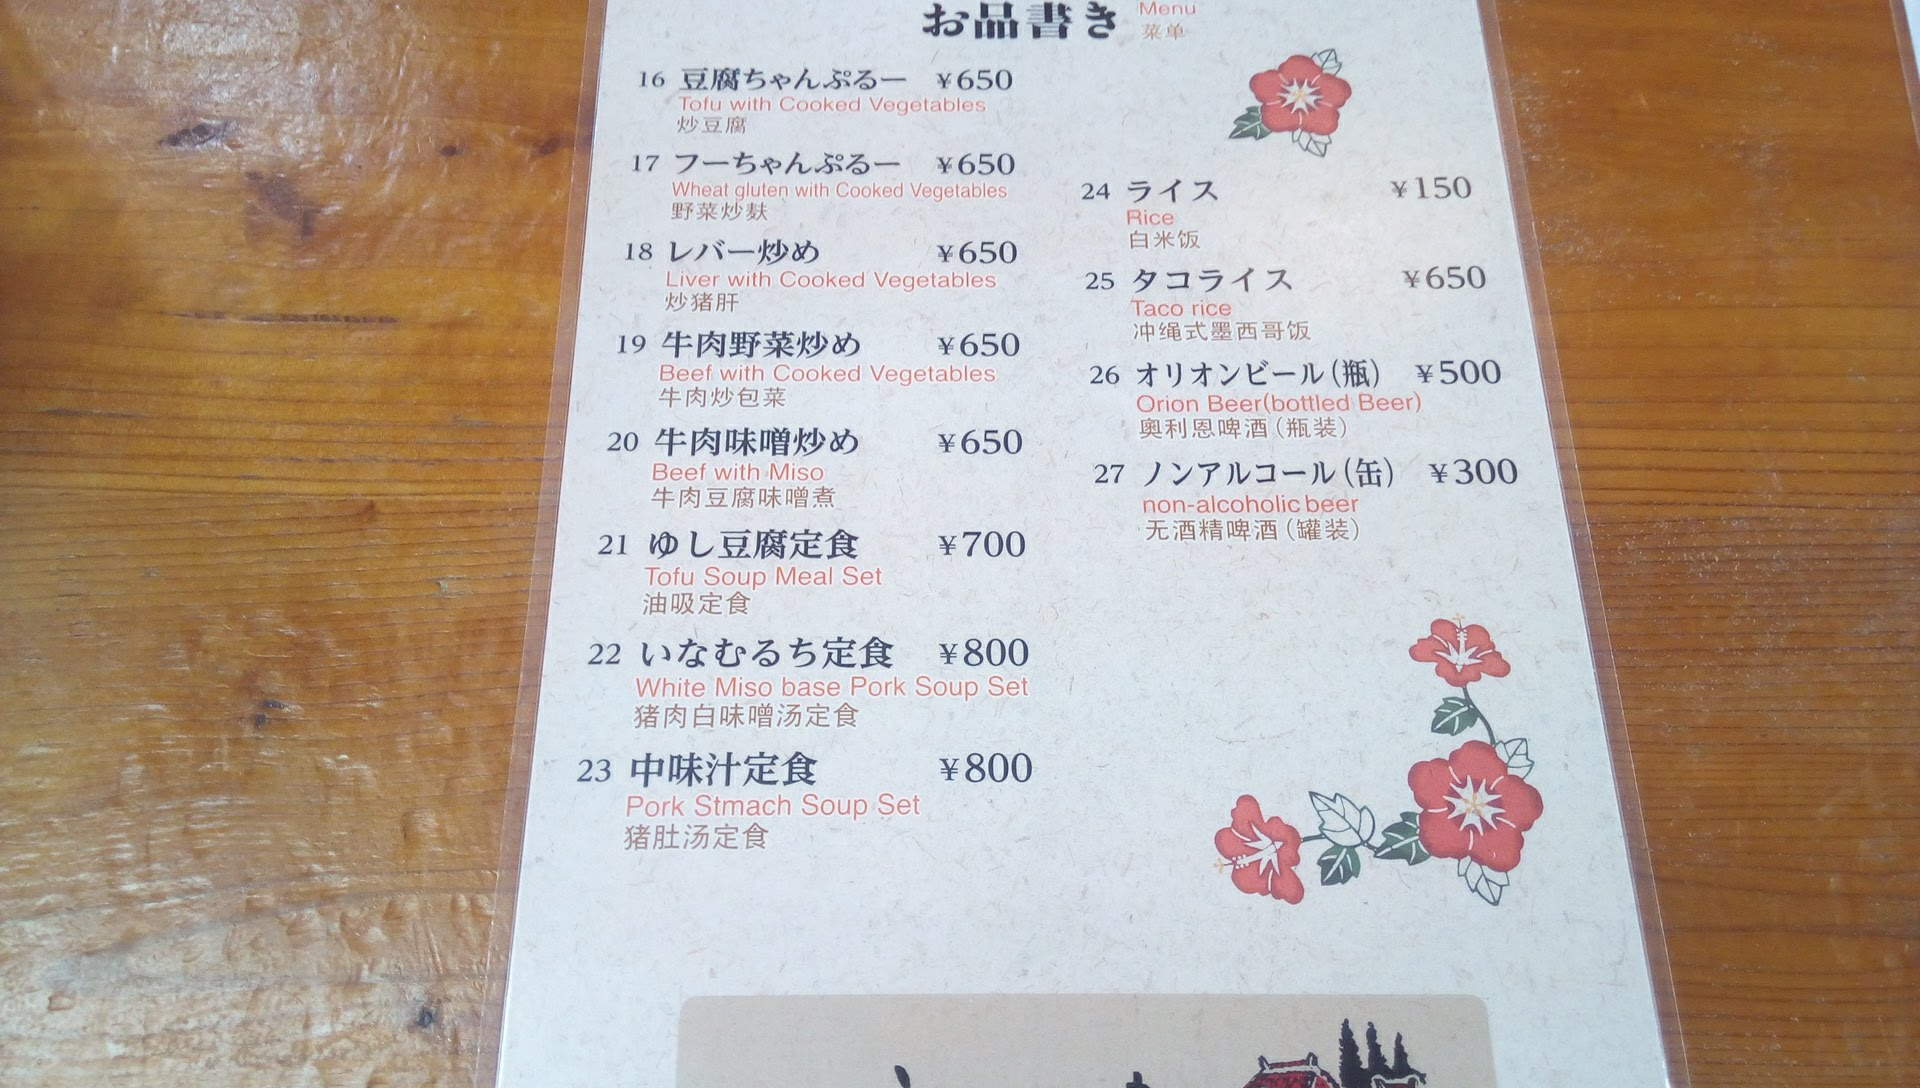 the menu of Uchina-ya 2